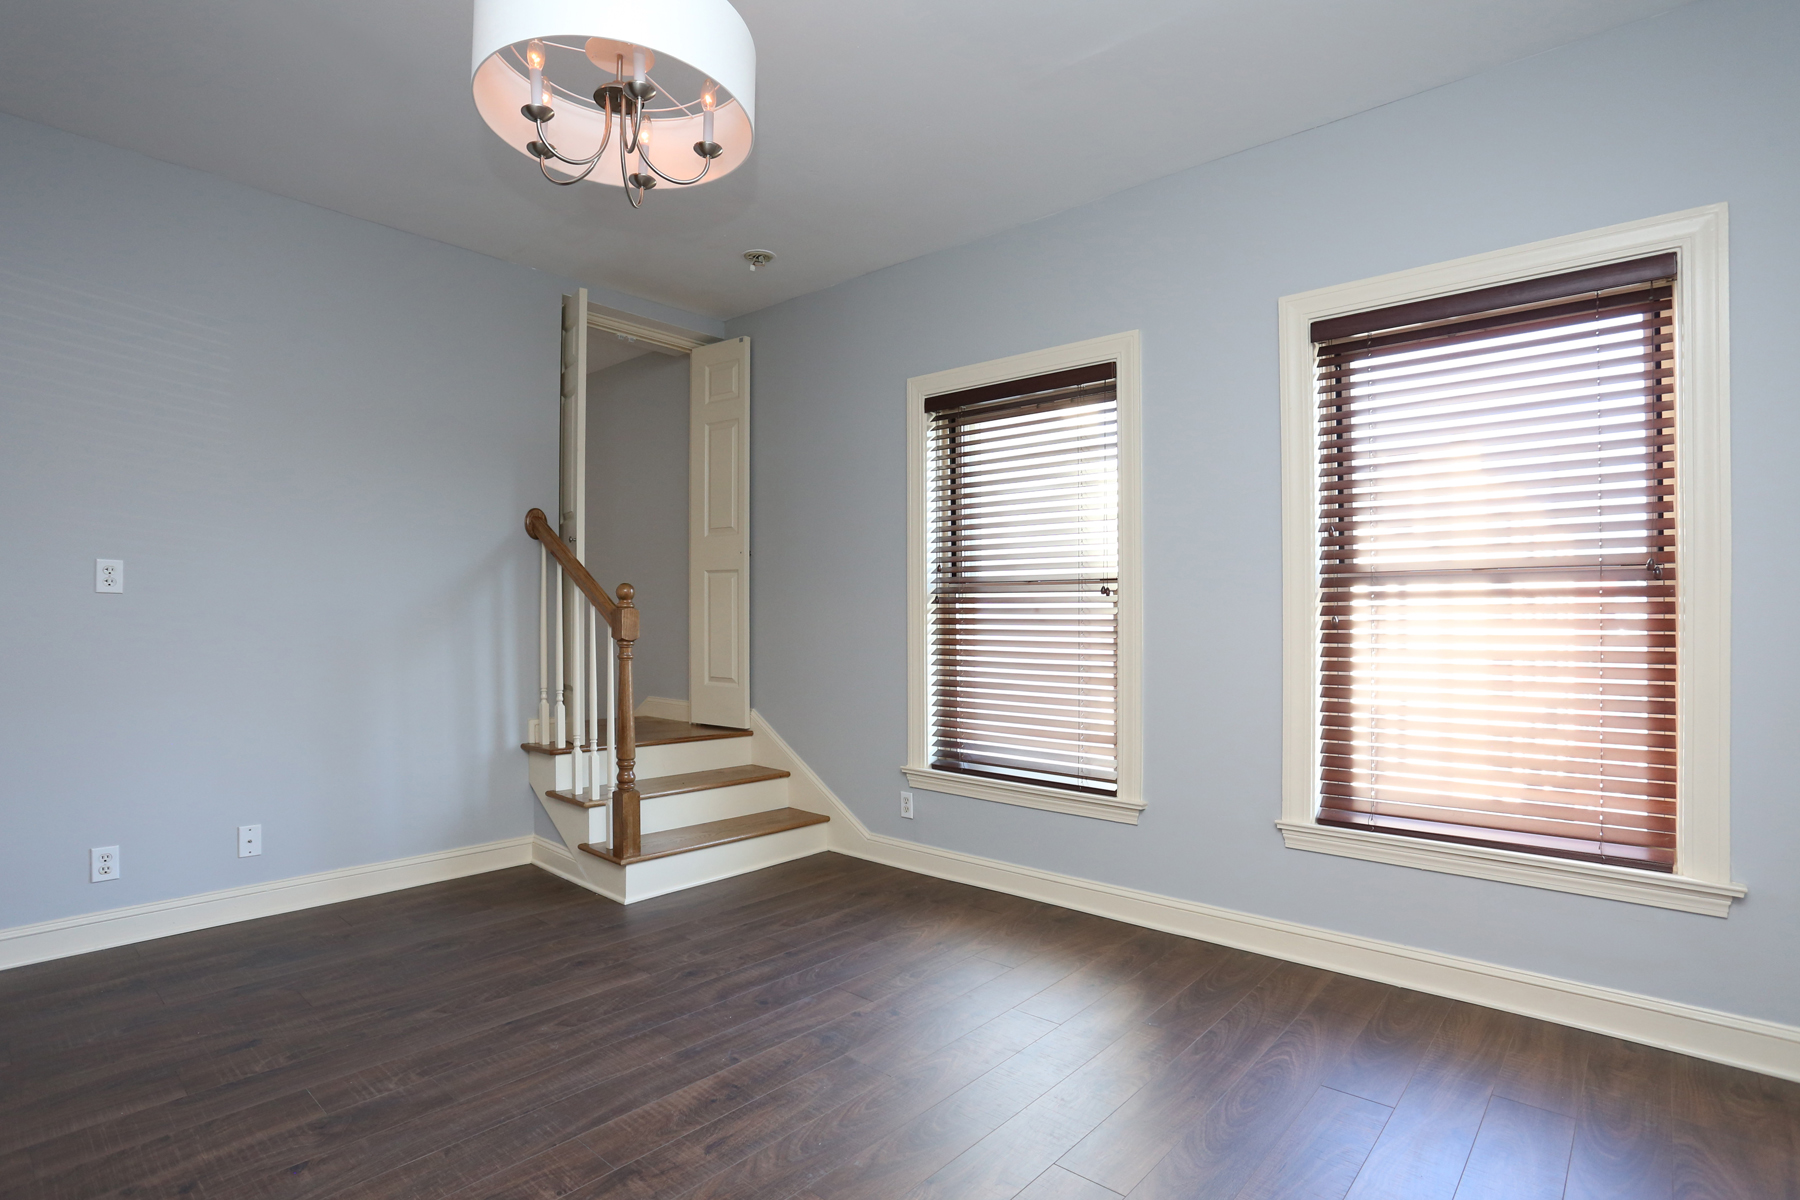 Condomínio para Venda às Completely Renovated One Bedroom At The Somerset 416 Commonwealth Ave. Unit 711 Back Bay, Boston, Massachusetts 02215 Estados Unidos